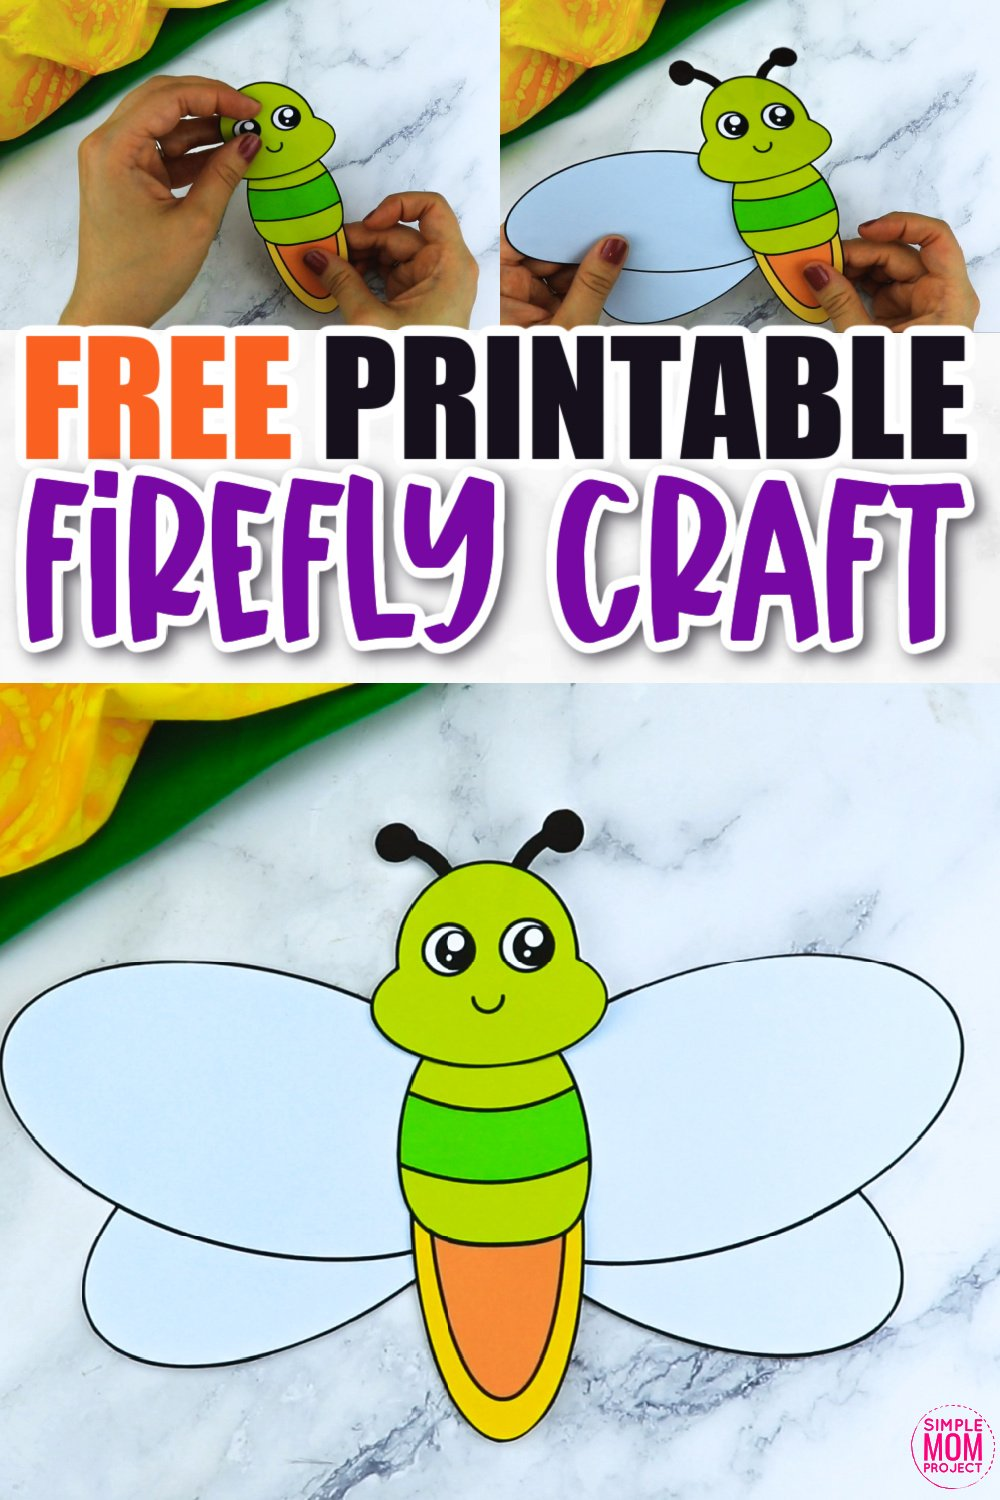 Free Printable Firefly Craft for Kids, preschoolers and toddlers